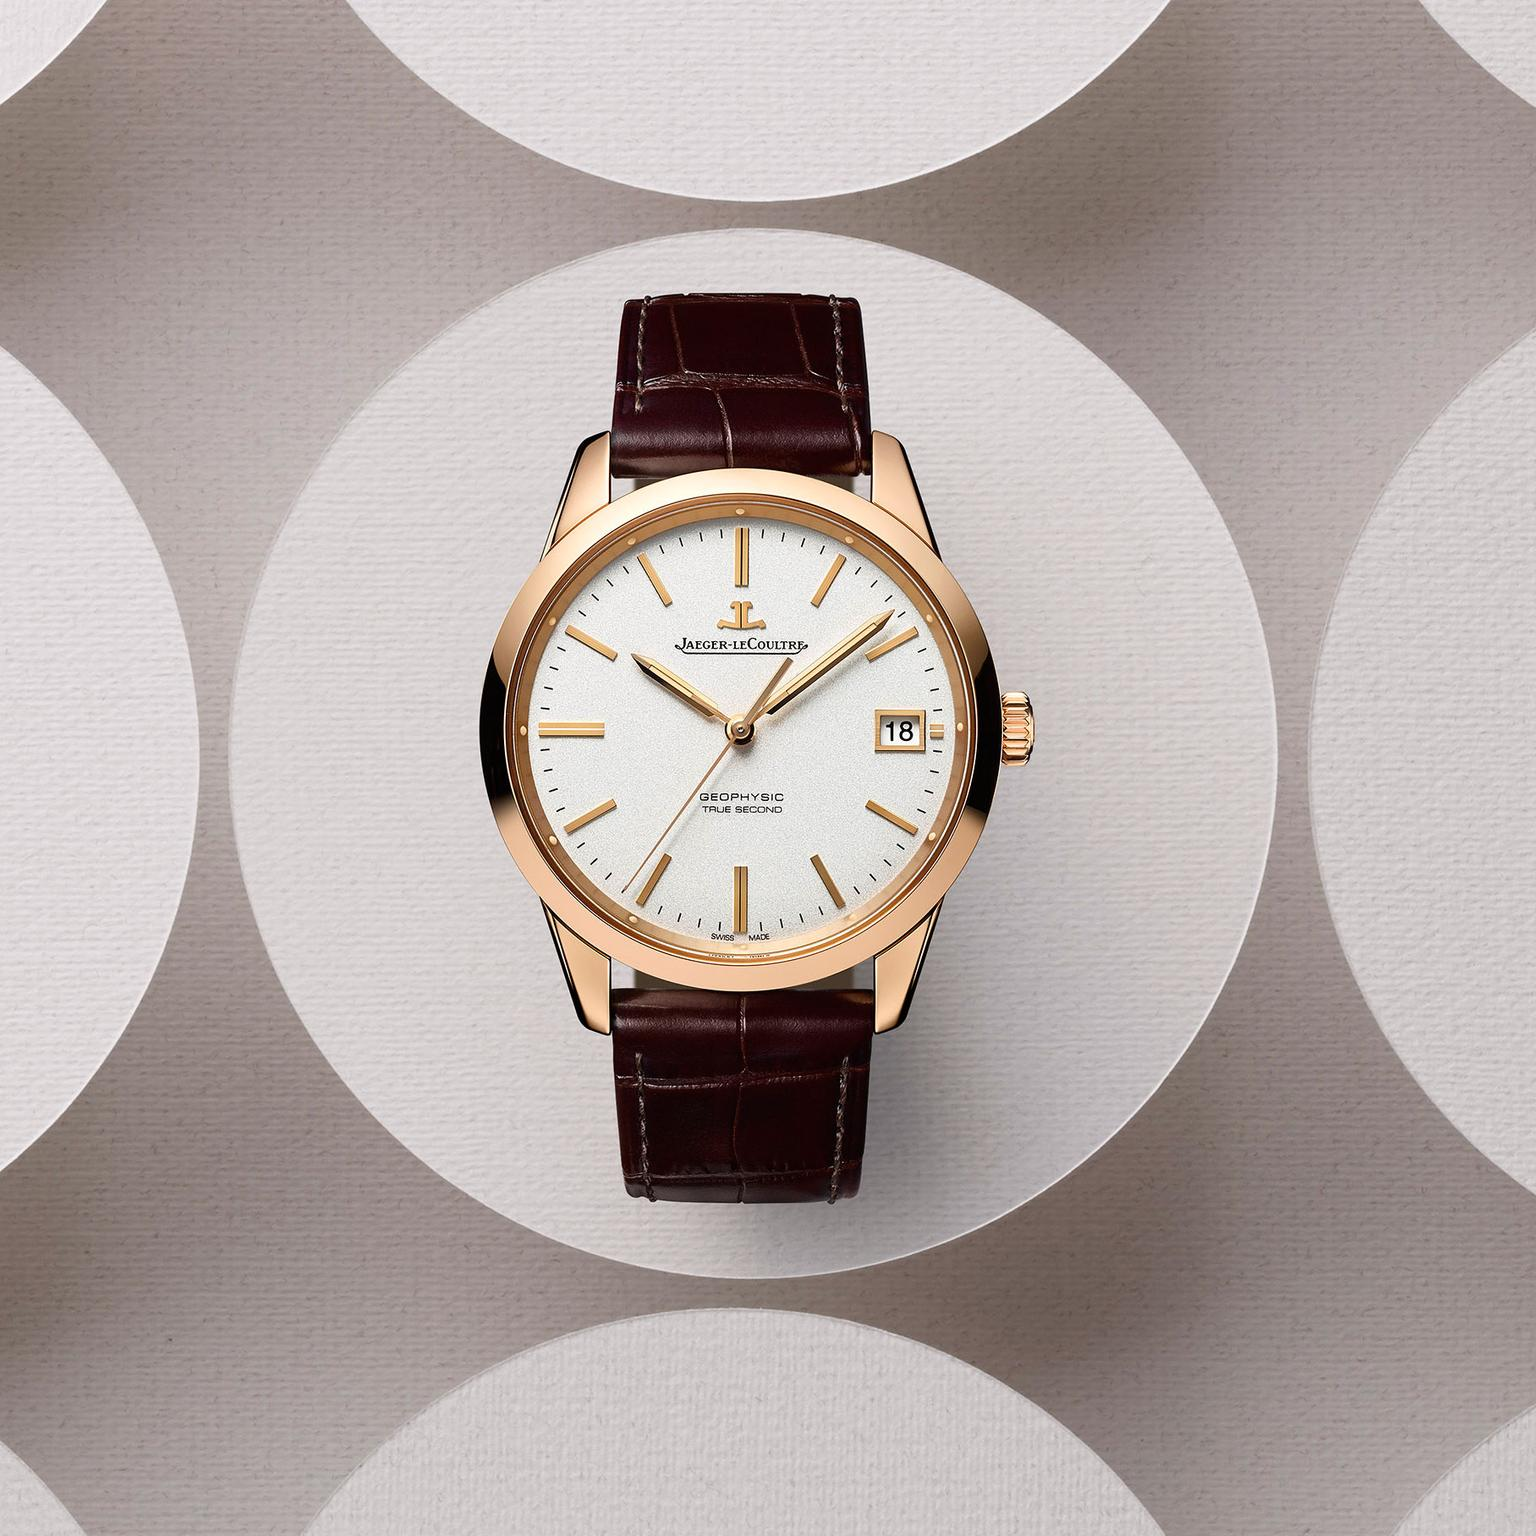 Jaeger-LeCoultre Geophysic True Second watch